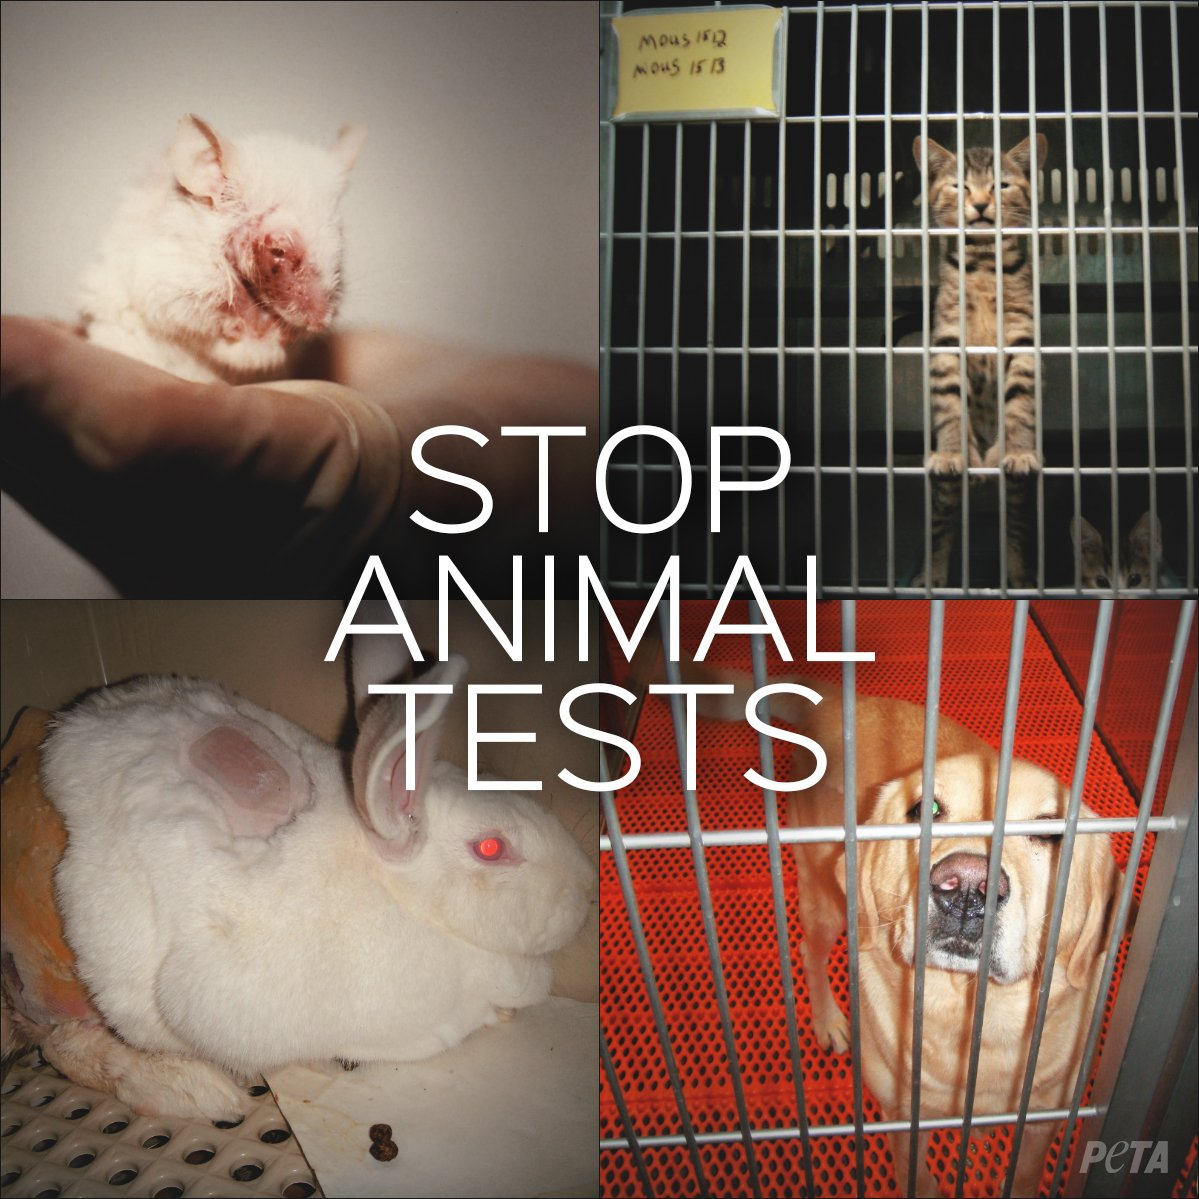 animal testing should be stopped Varity of different argument have been put forward about this issue but it is strongly agreed by most of the community that experiment on animals should be stopped scientist researches say that animal testing is the future to finding cures and helps them figure out what will work and not work on humans.